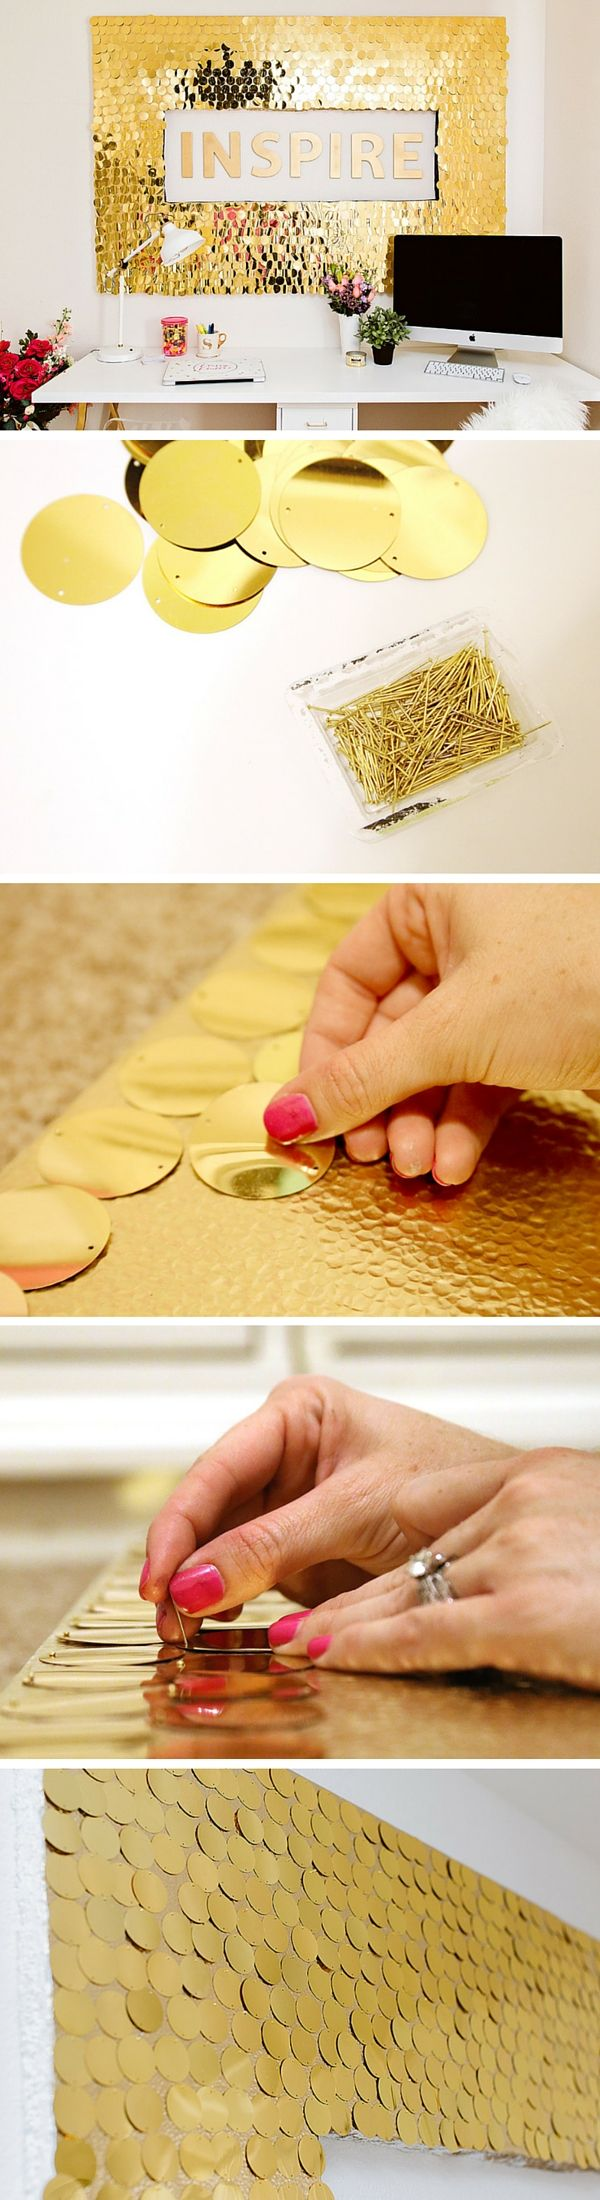 15 DIY Projects to Make Your Home Look Classy | Sequin wall, Wall ...